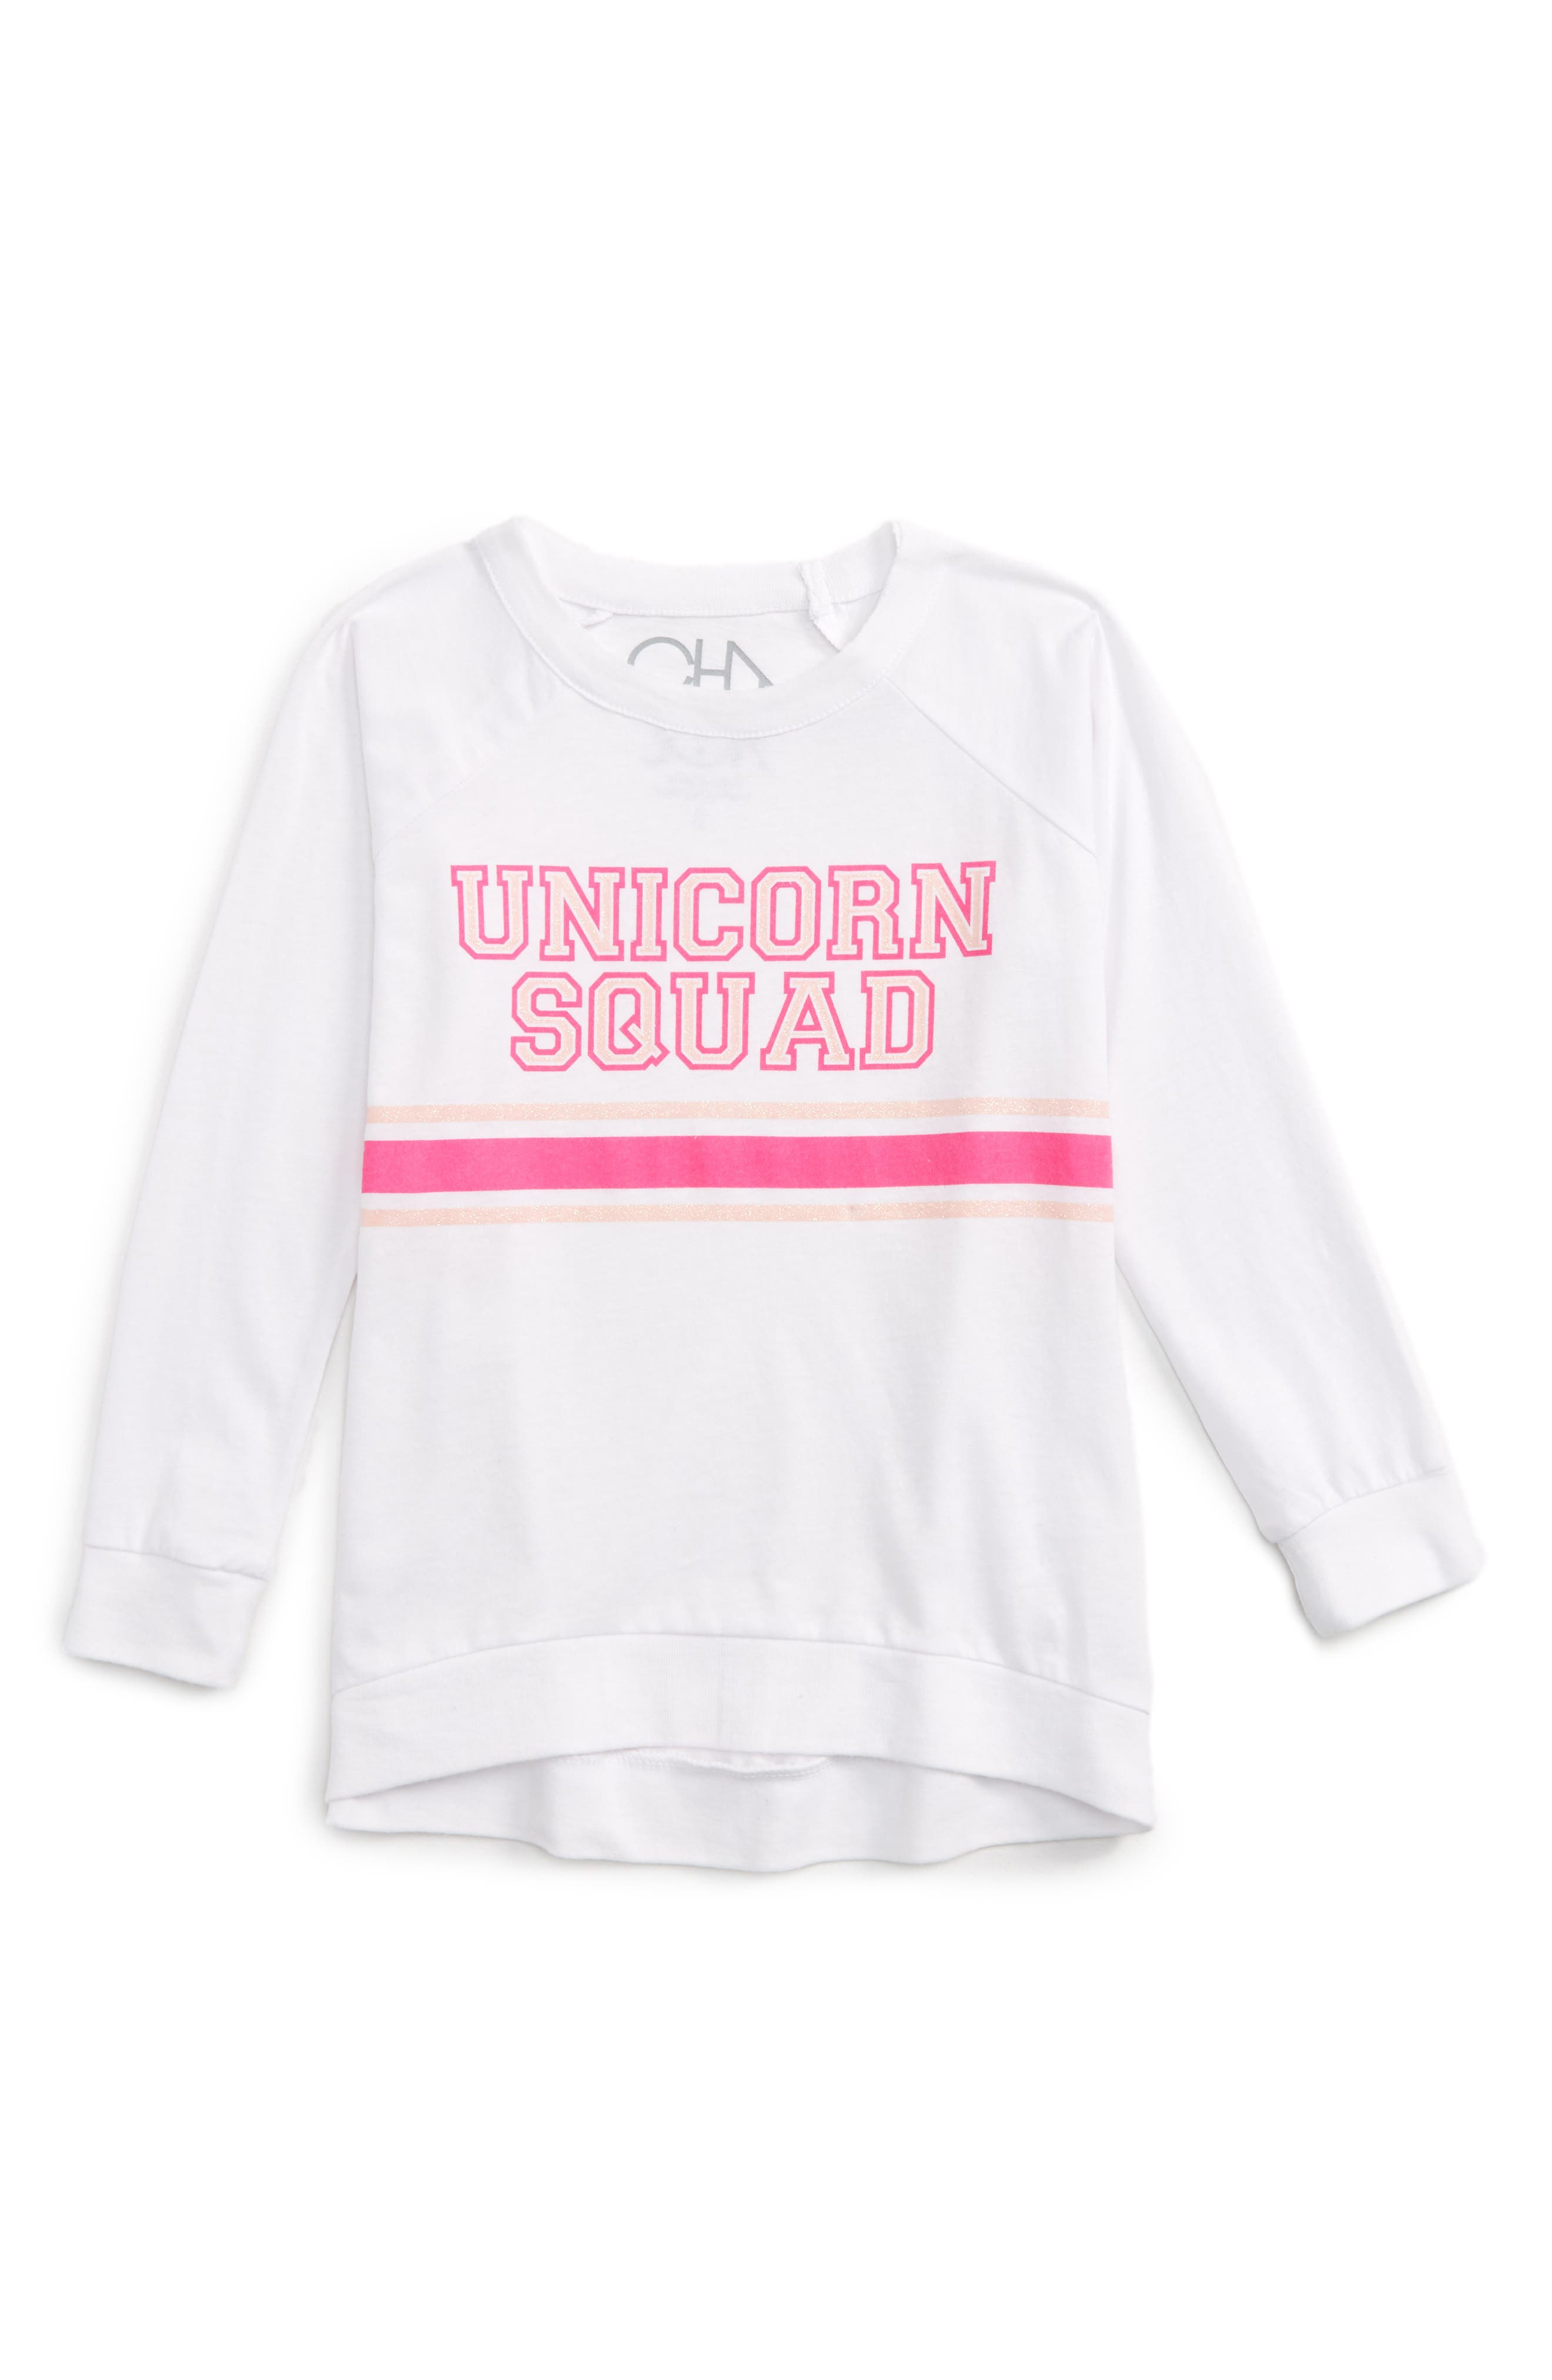 Main Image - Chaser Unicorn Squad Graphic Tee (Toddler Girls & Little Girls)